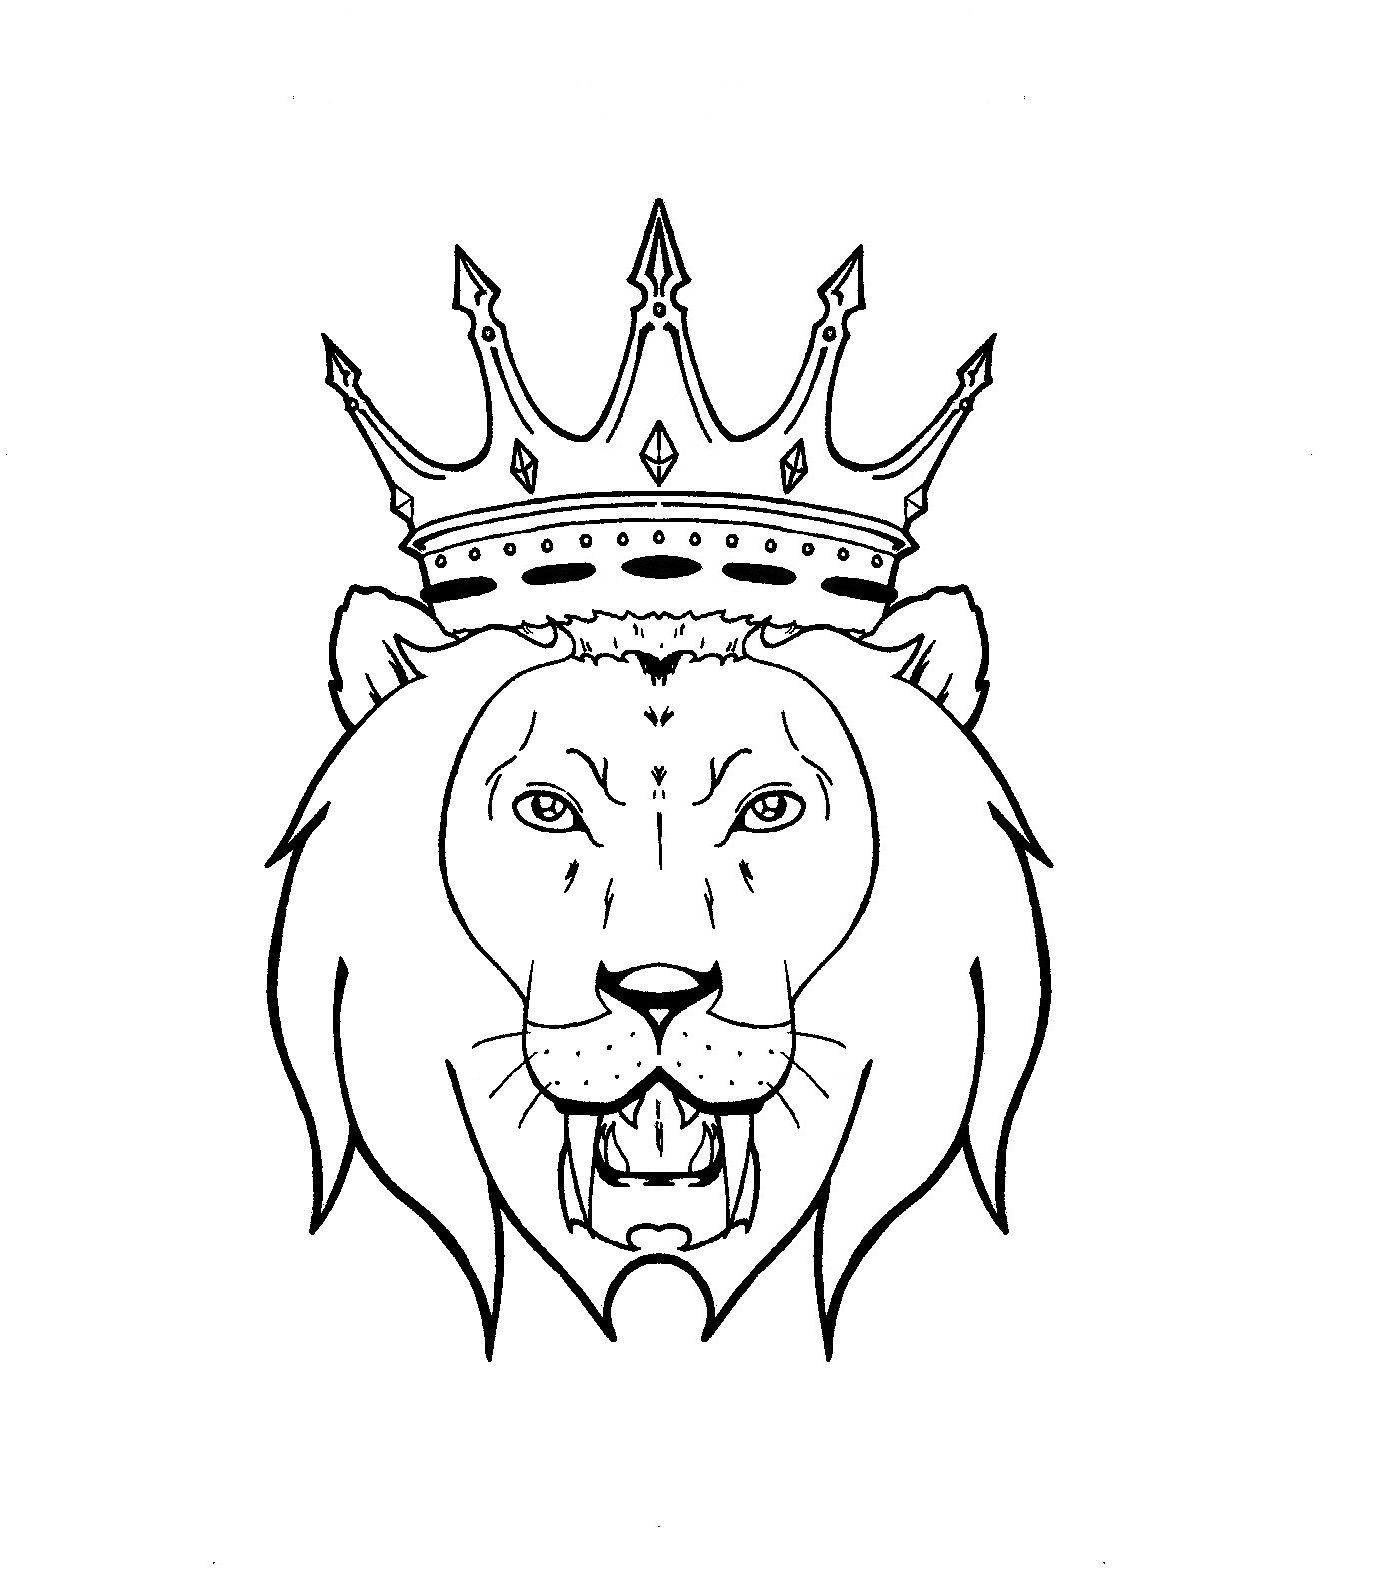 Line Drawing Crown : King crown drawings yahoo image search results